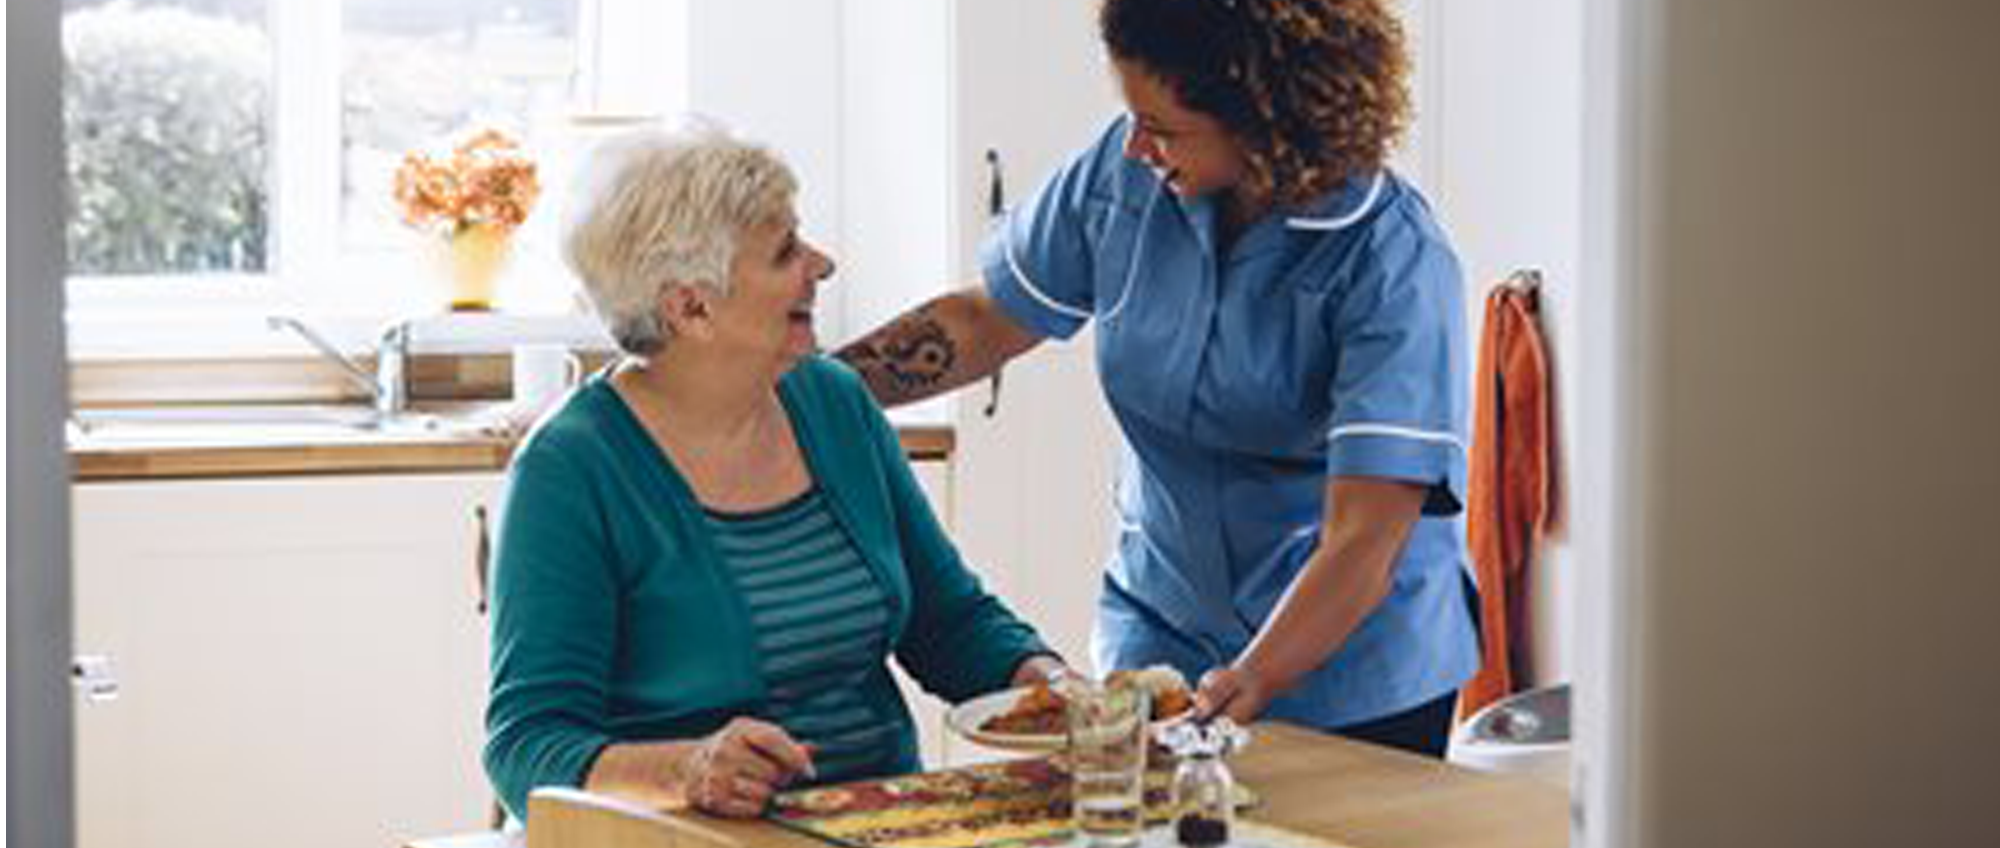 Care worker talking to a woman